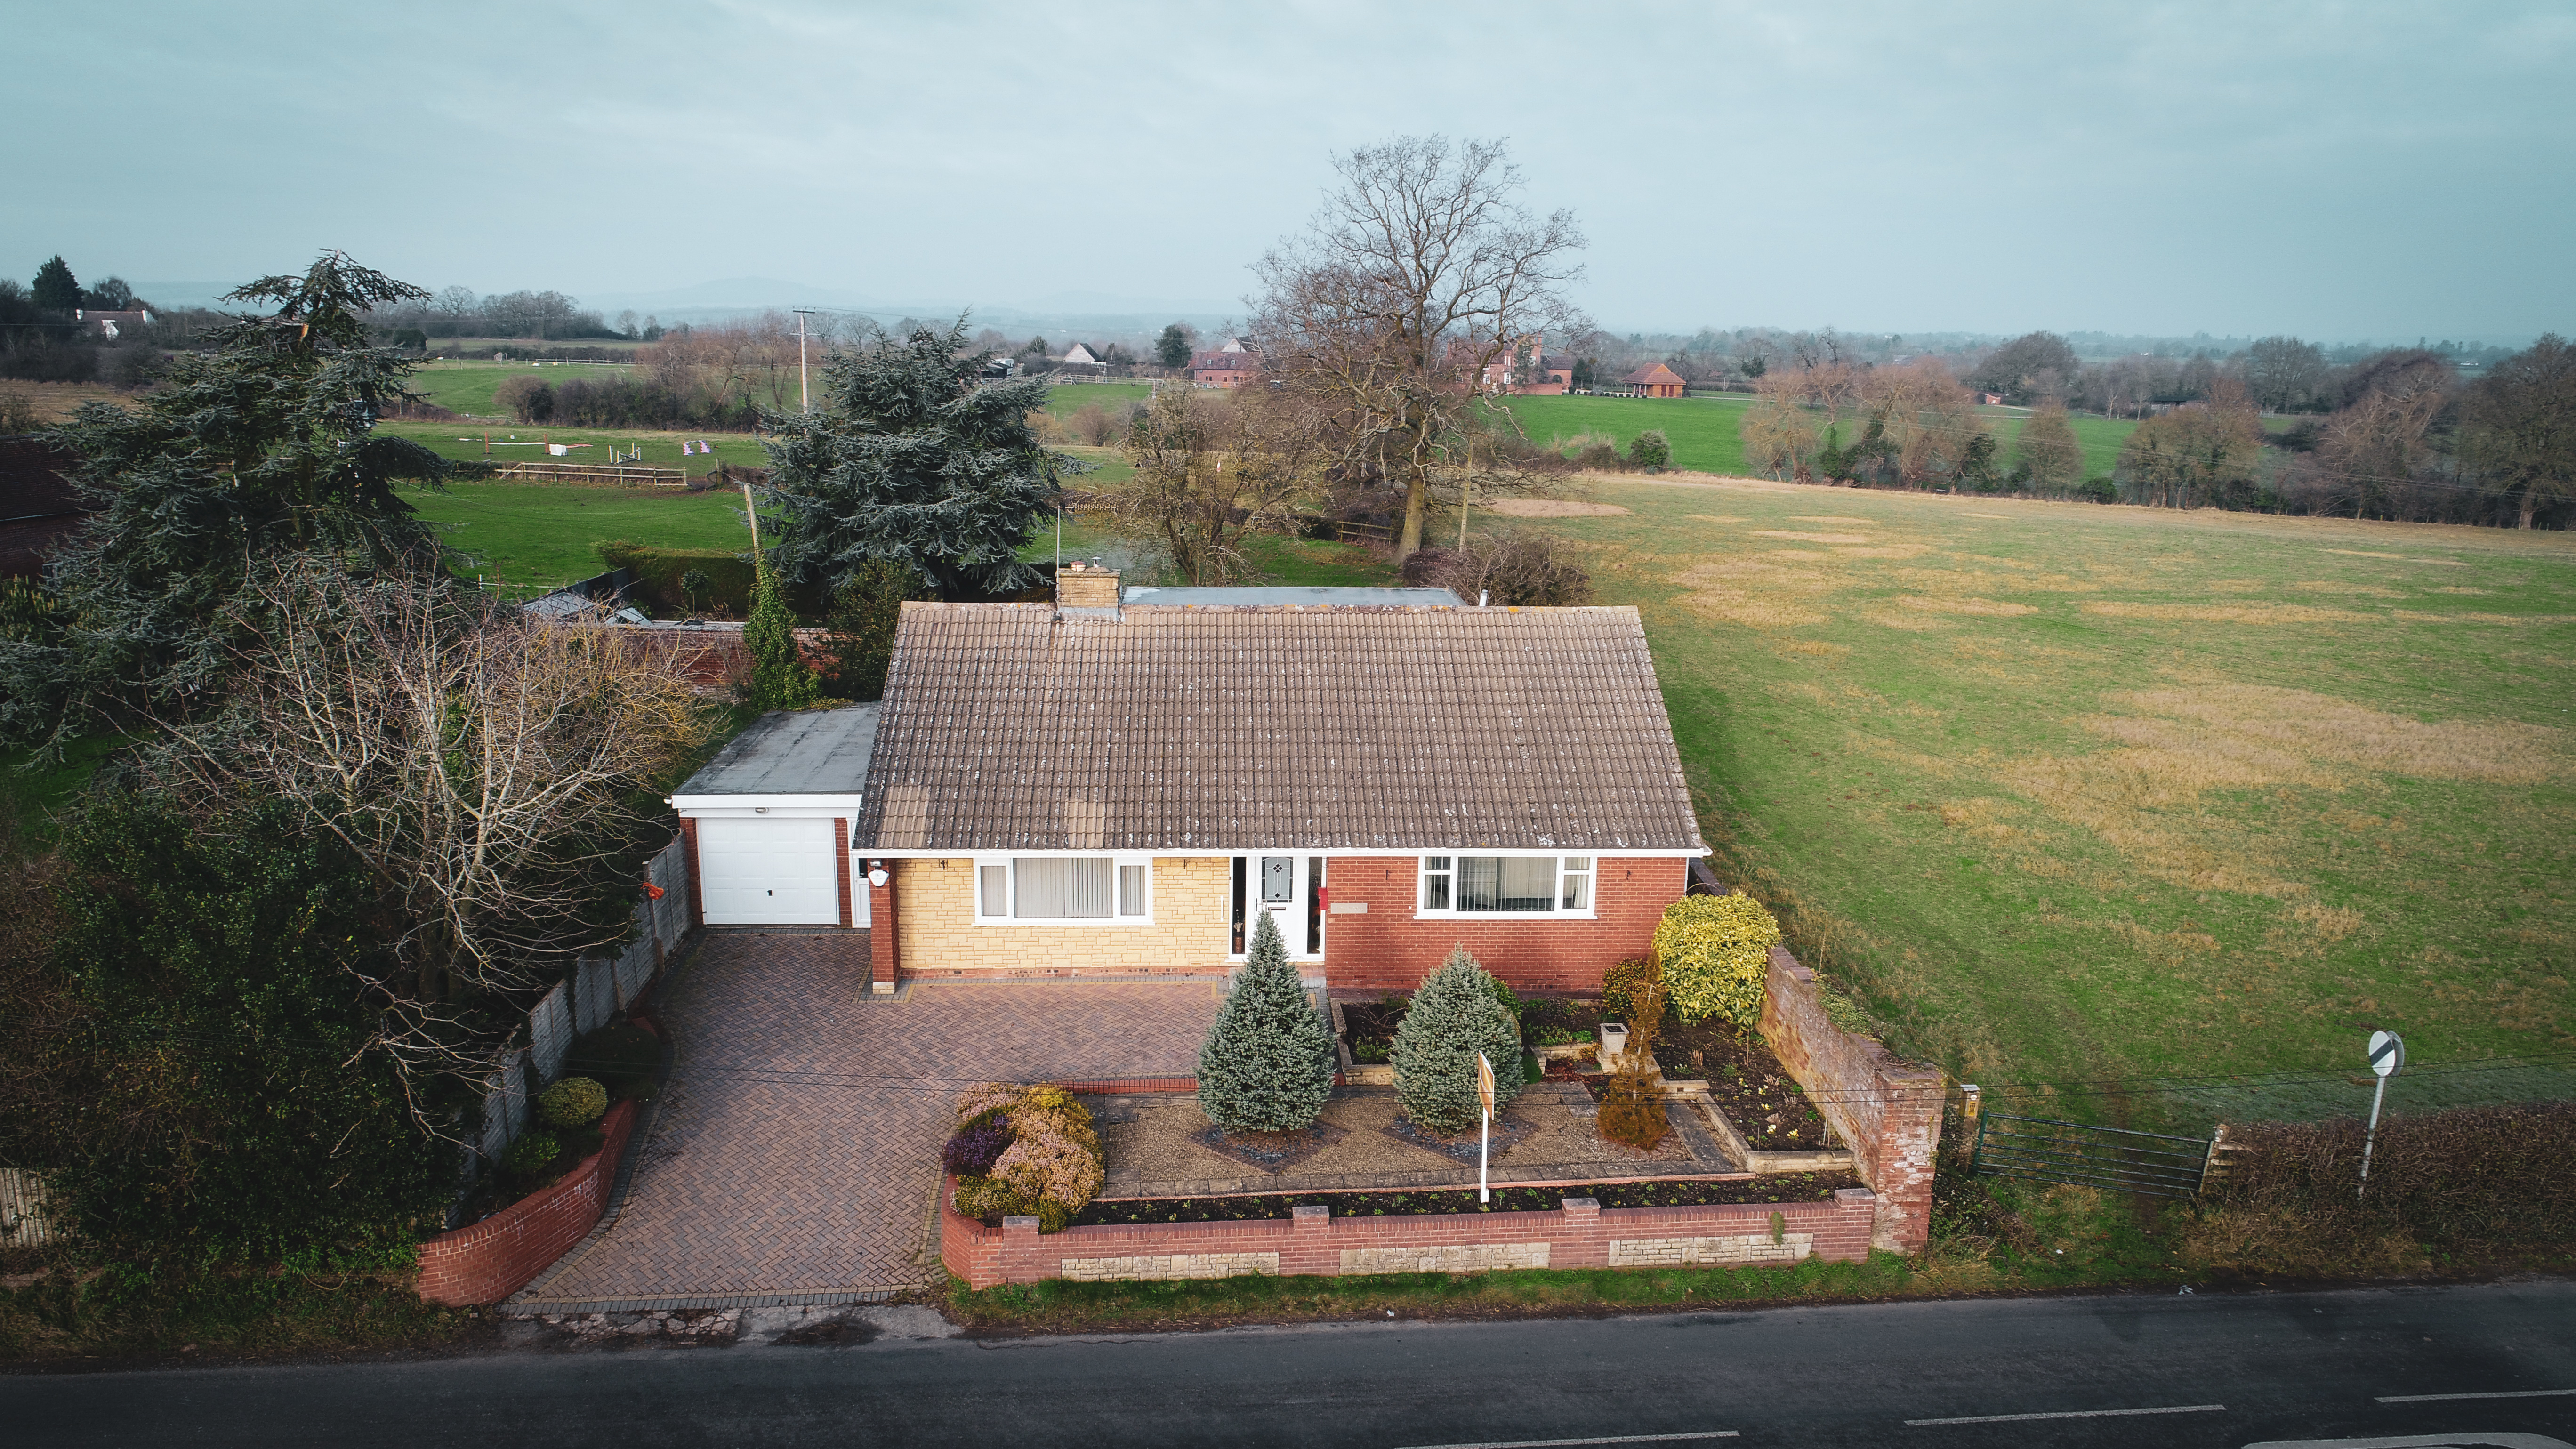 Inglewood, Hallow Lane, Lower Broadheath, Worcestershire, WR2 6QL. Picture perfect countryside views